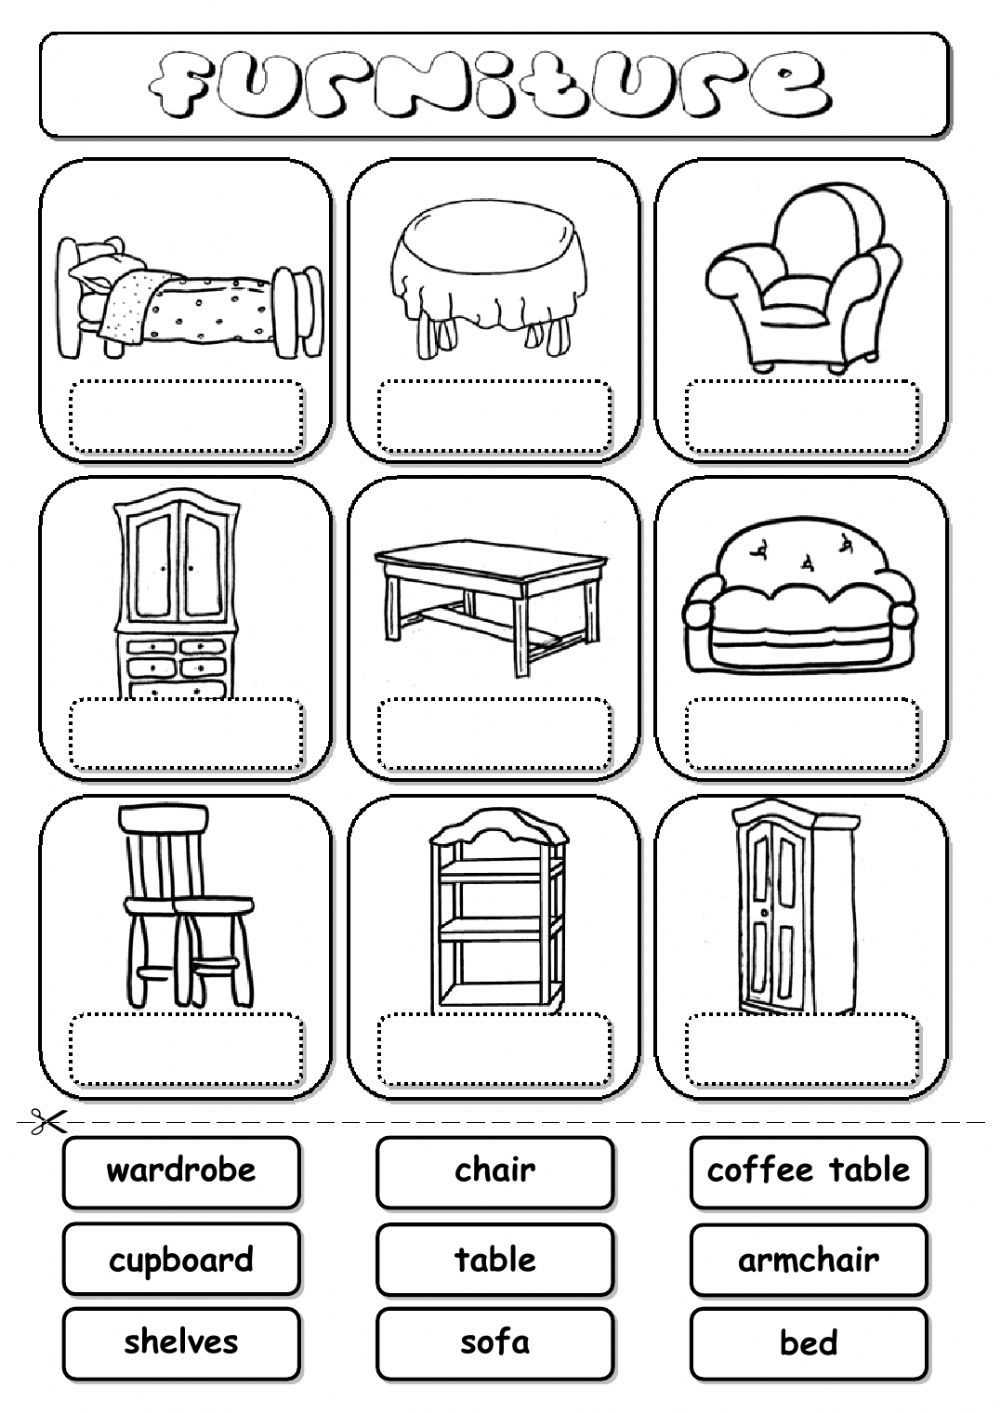 The furniture interactive and downloadable worksheet